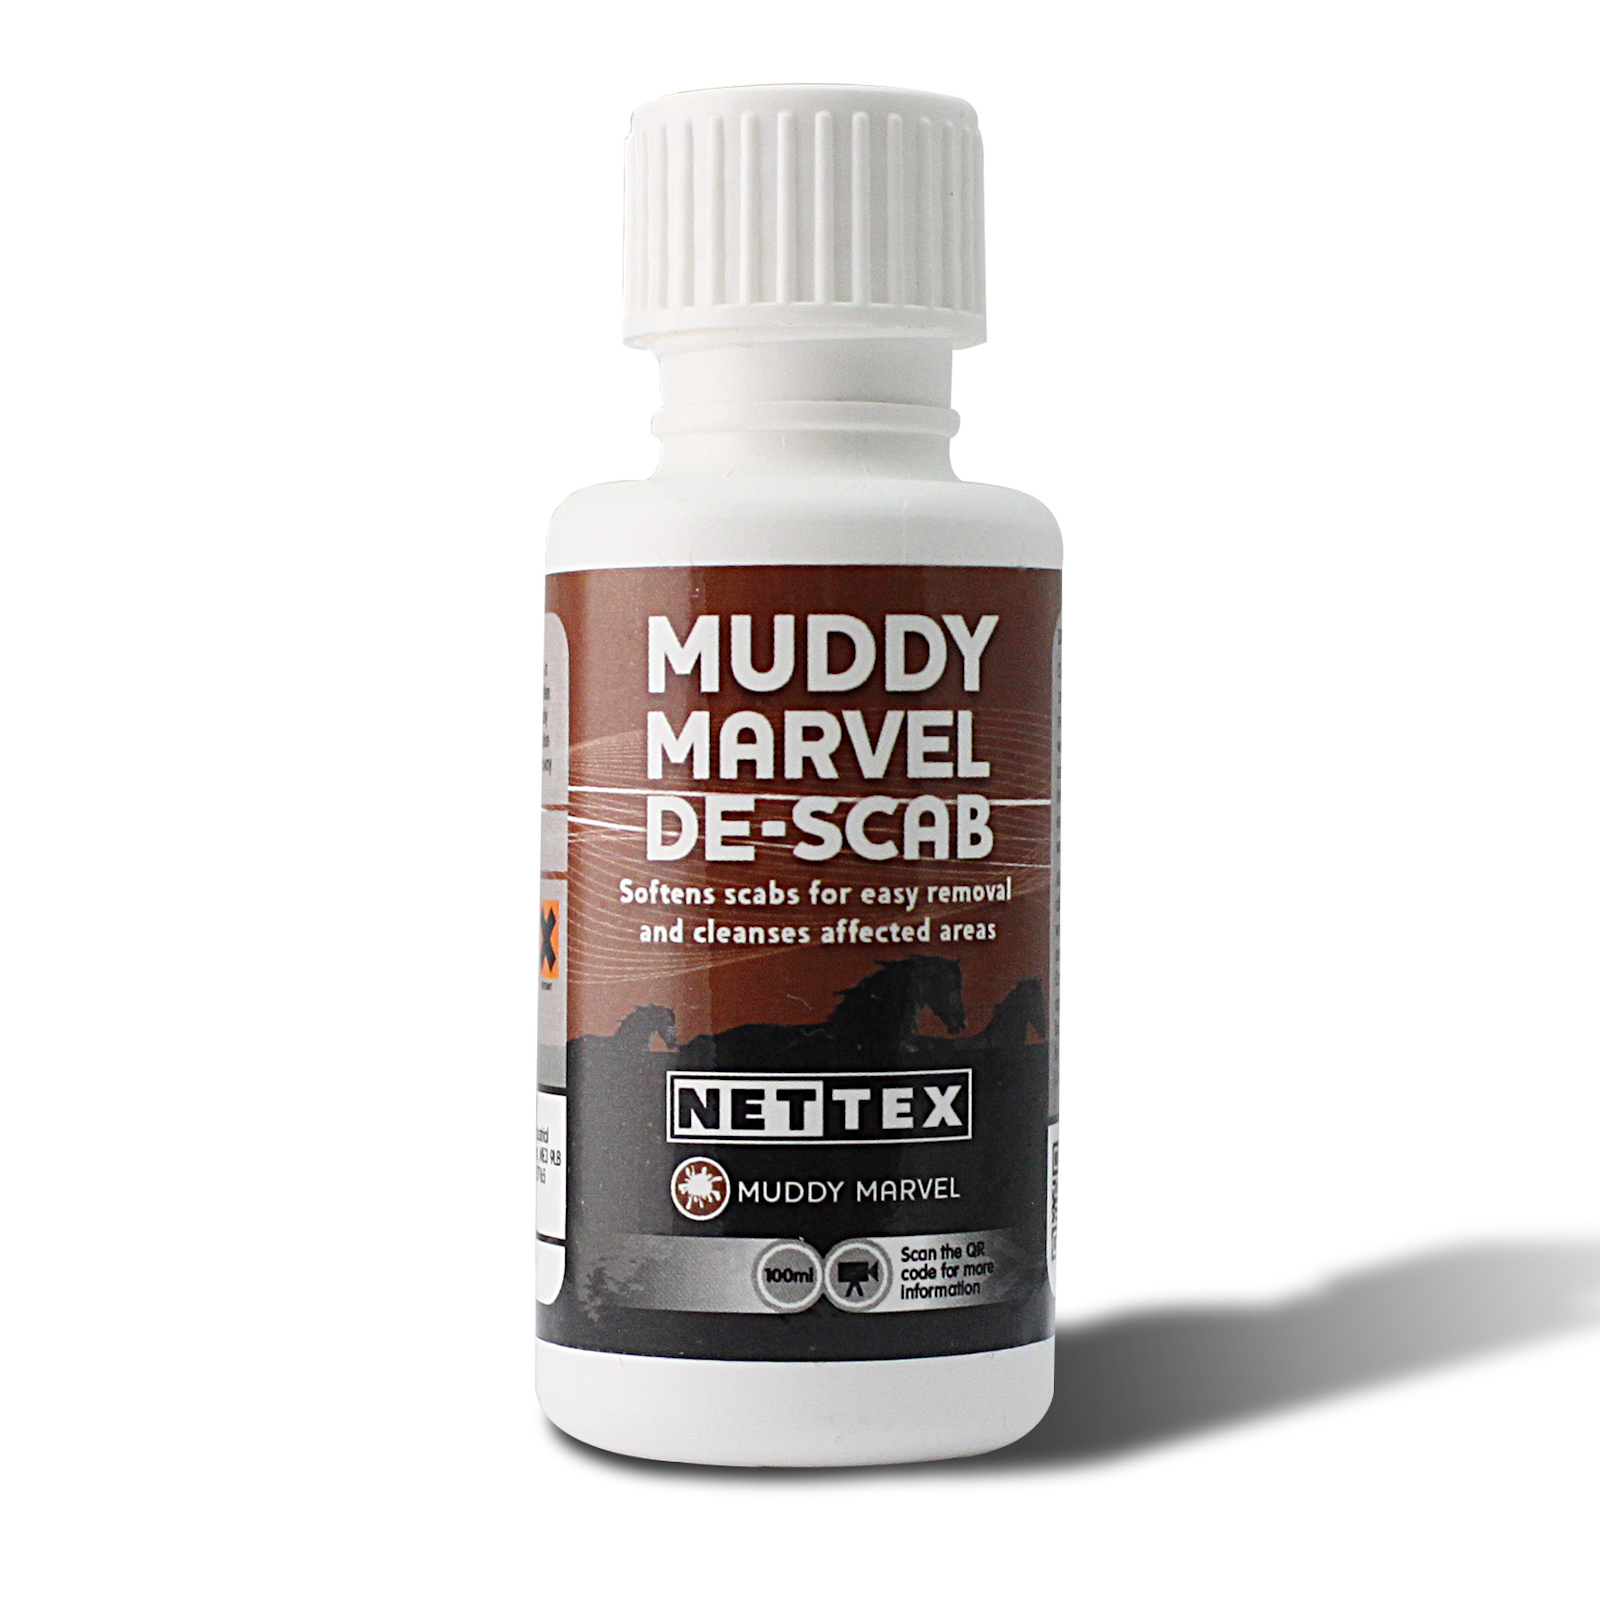 Nettex Muddy Marvel De-scab 100 ml